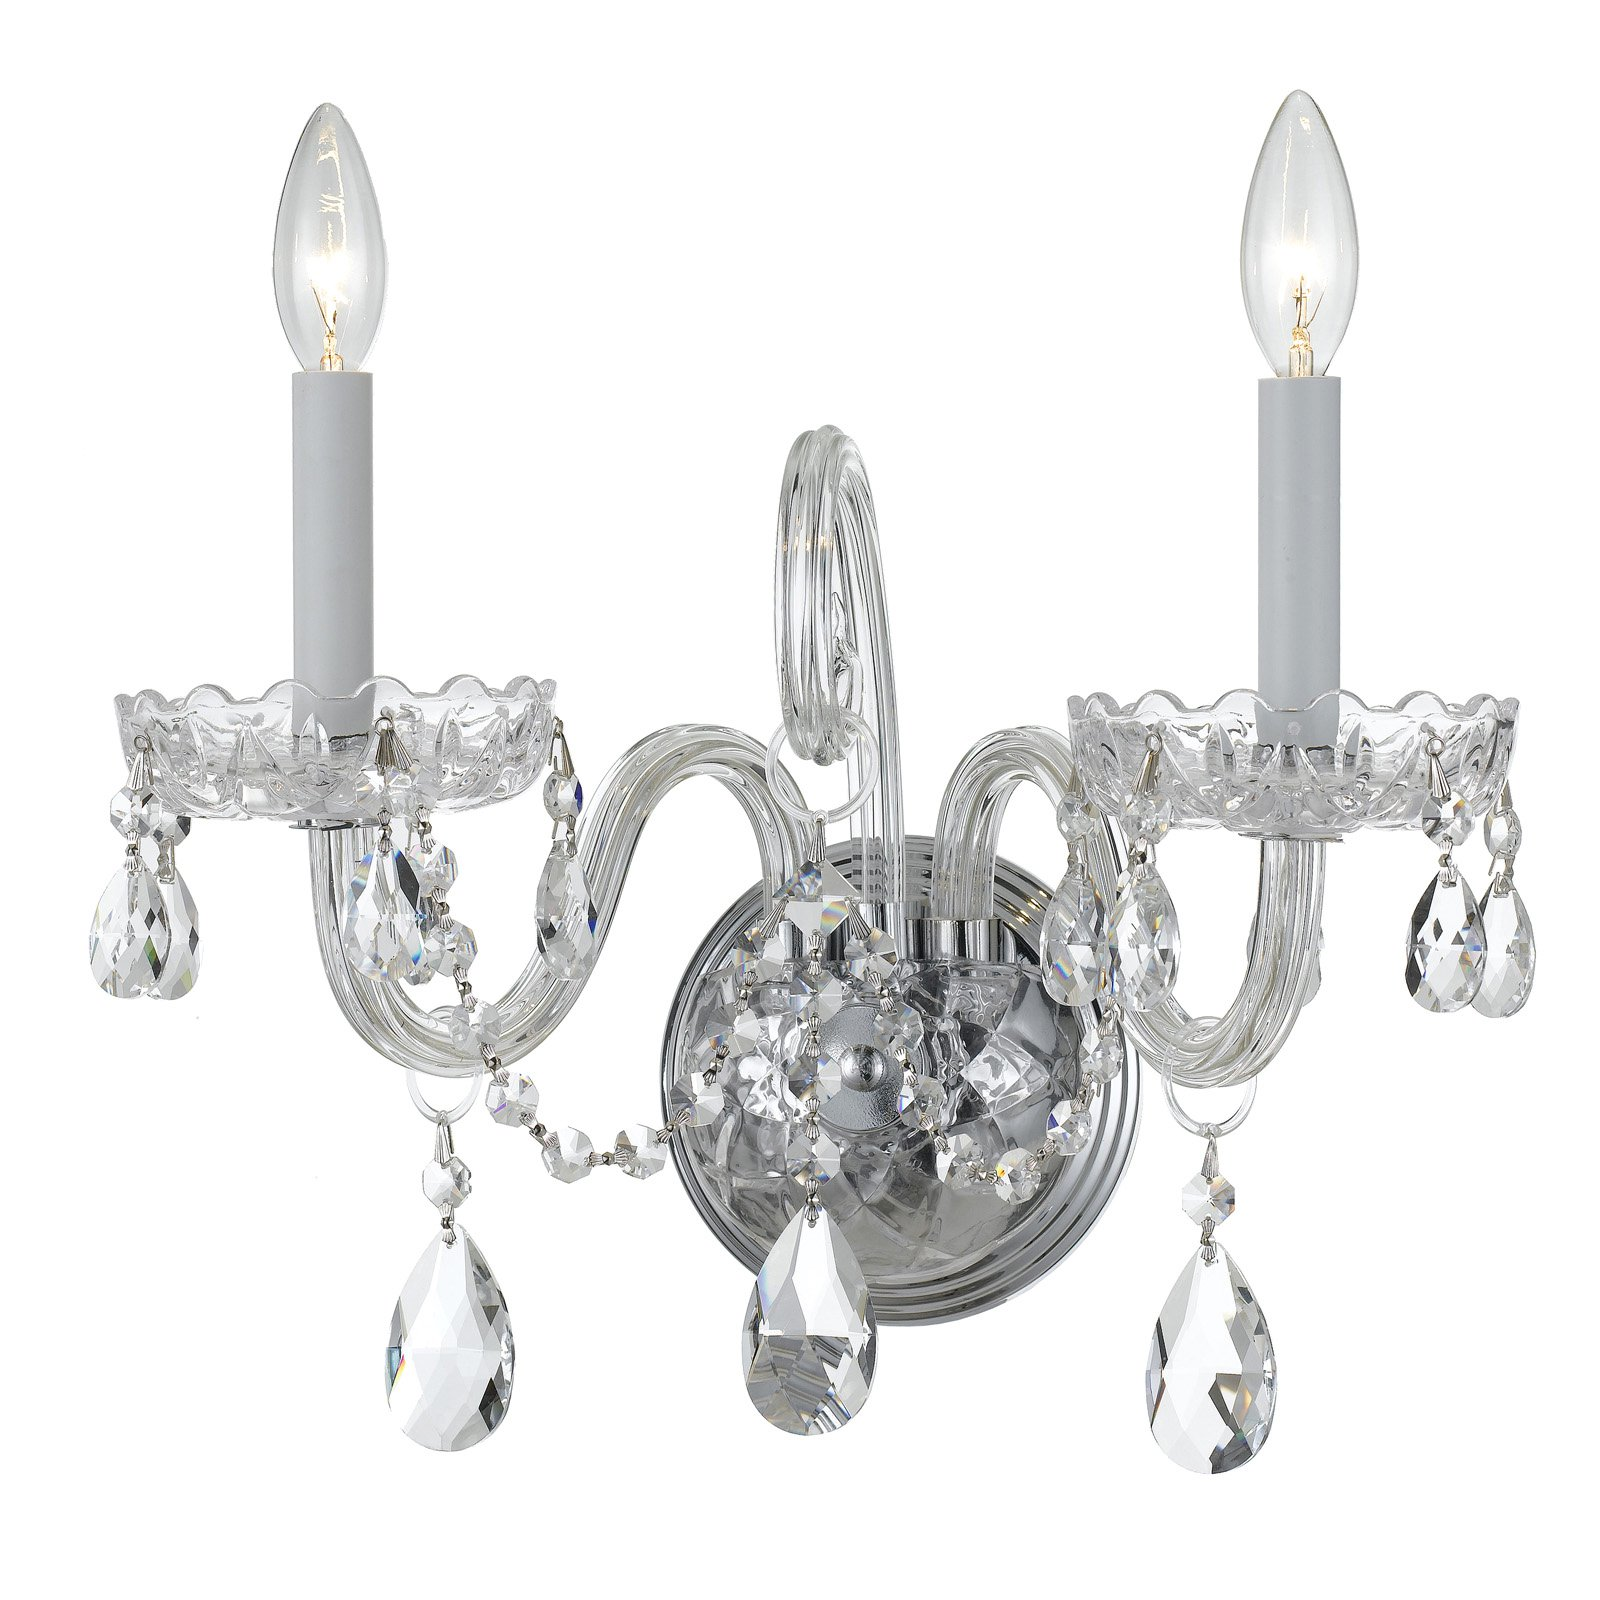 Crystorama 1032-CH-CL-S Traditional Swarovski Elements Crystal Wall Sconce 15W in. by Crystorama